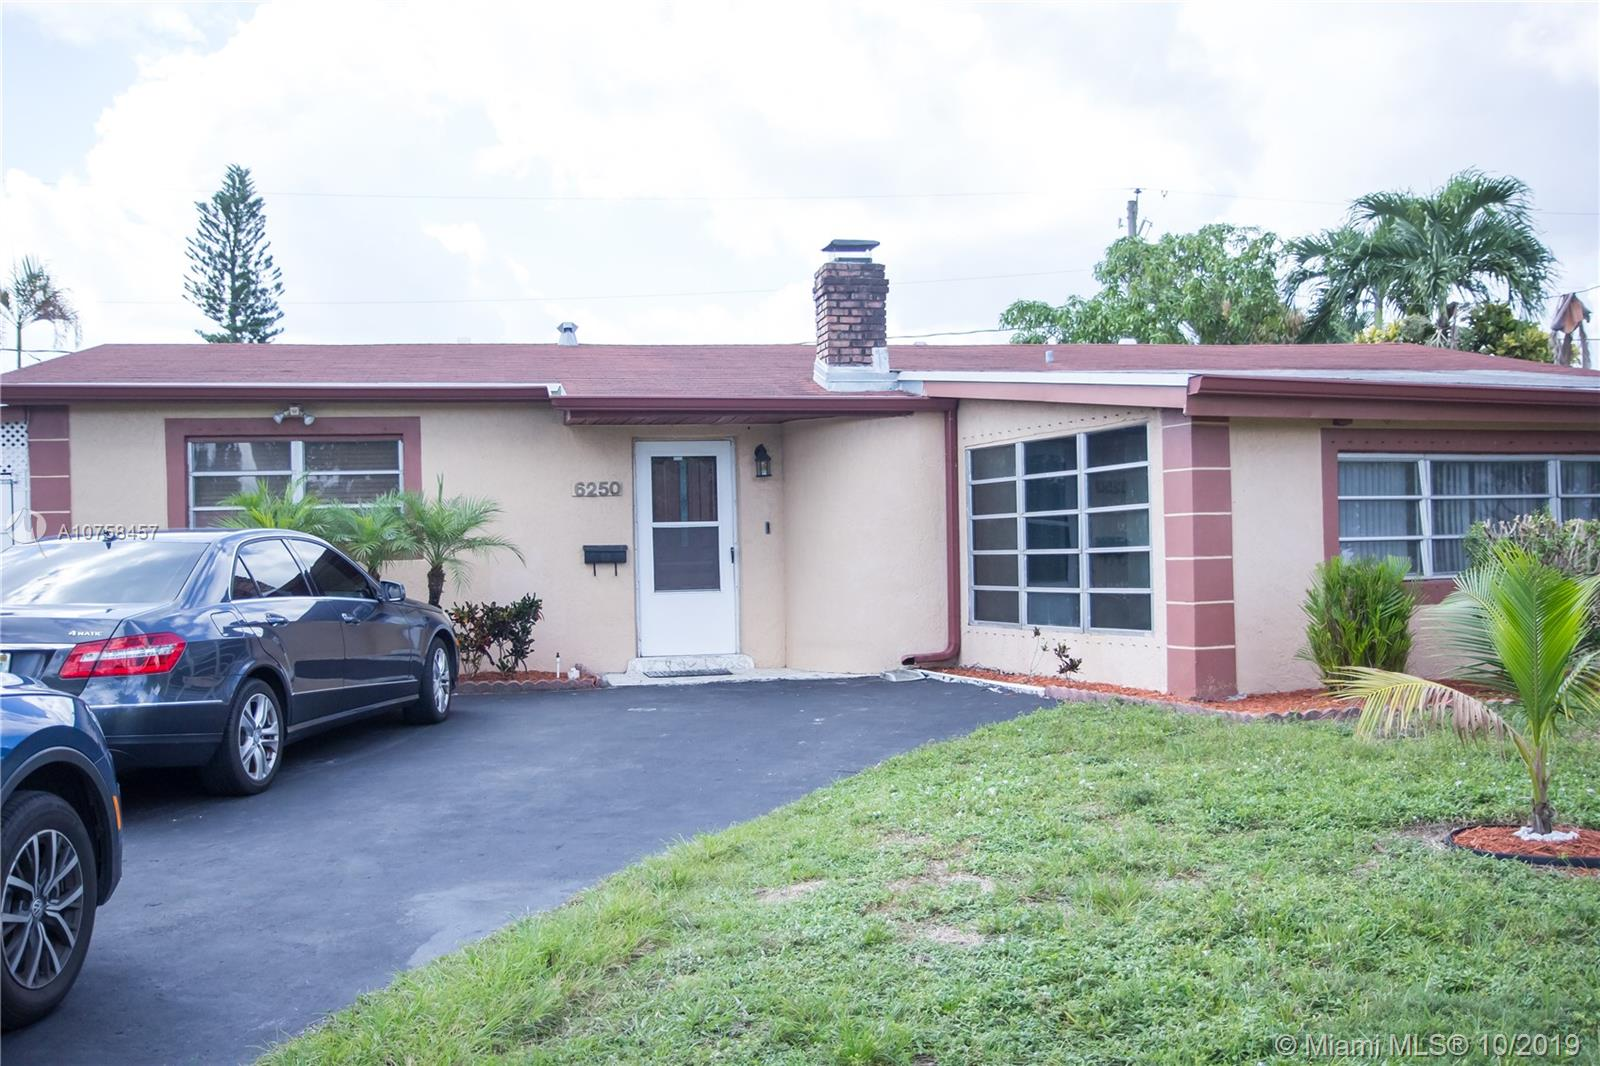 6250 NW 15th St, Sunrise, FL 33313